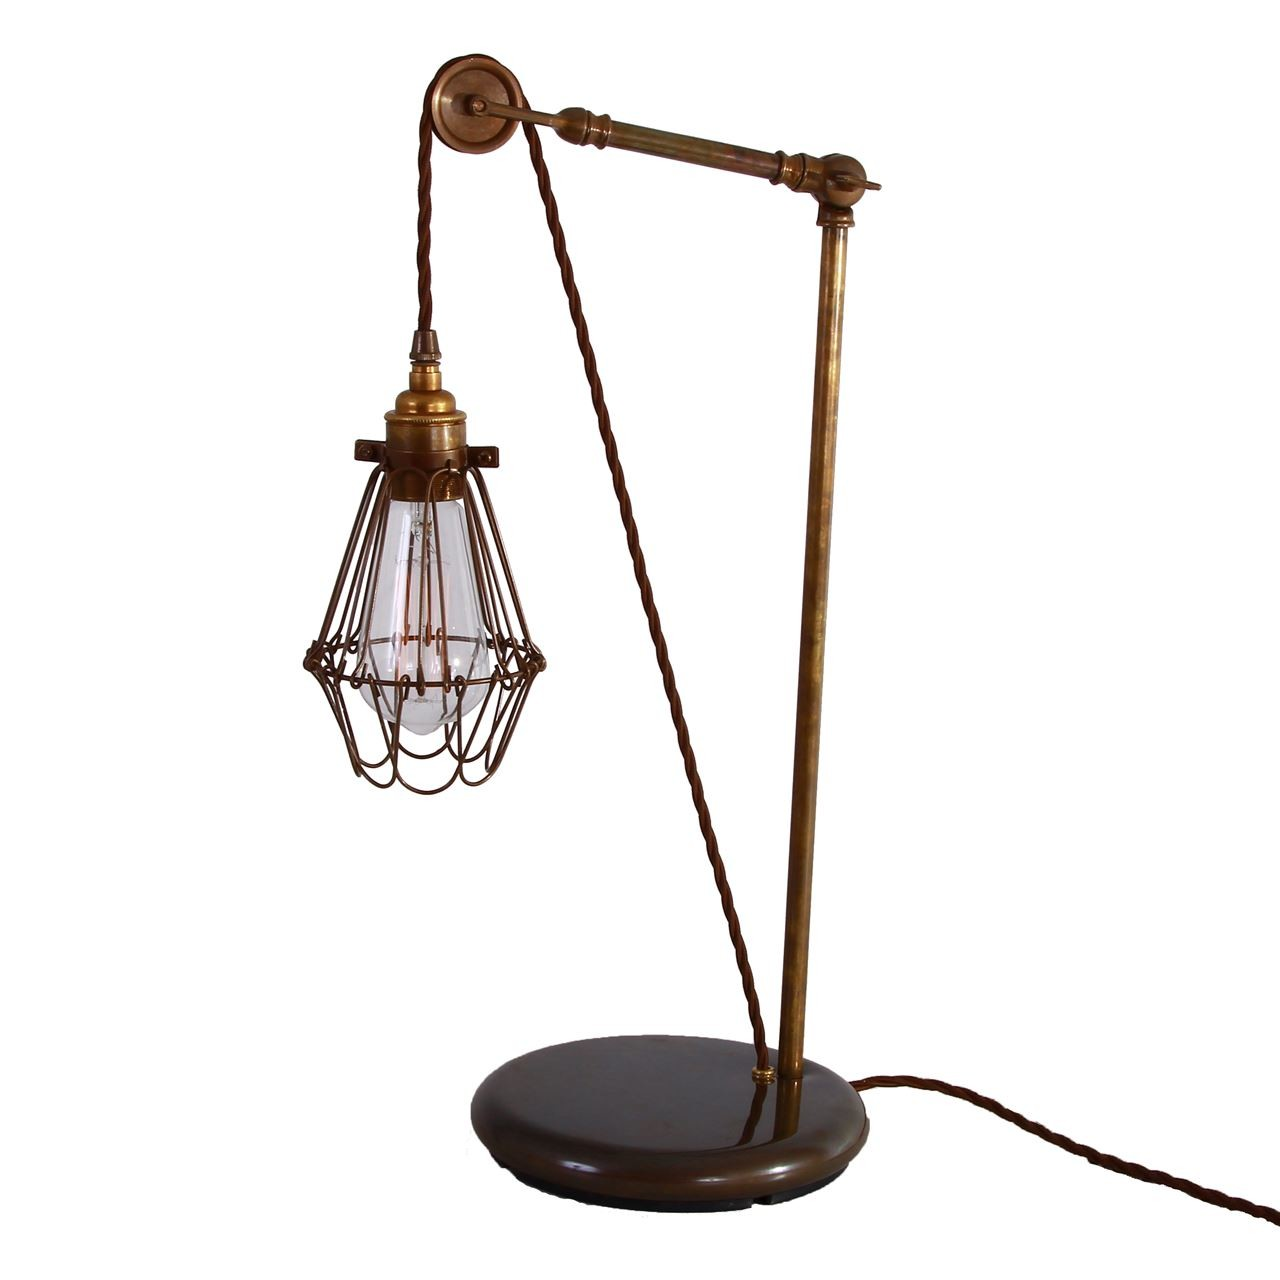 Apoch Pulley Cage Table Lamp Antique Brass